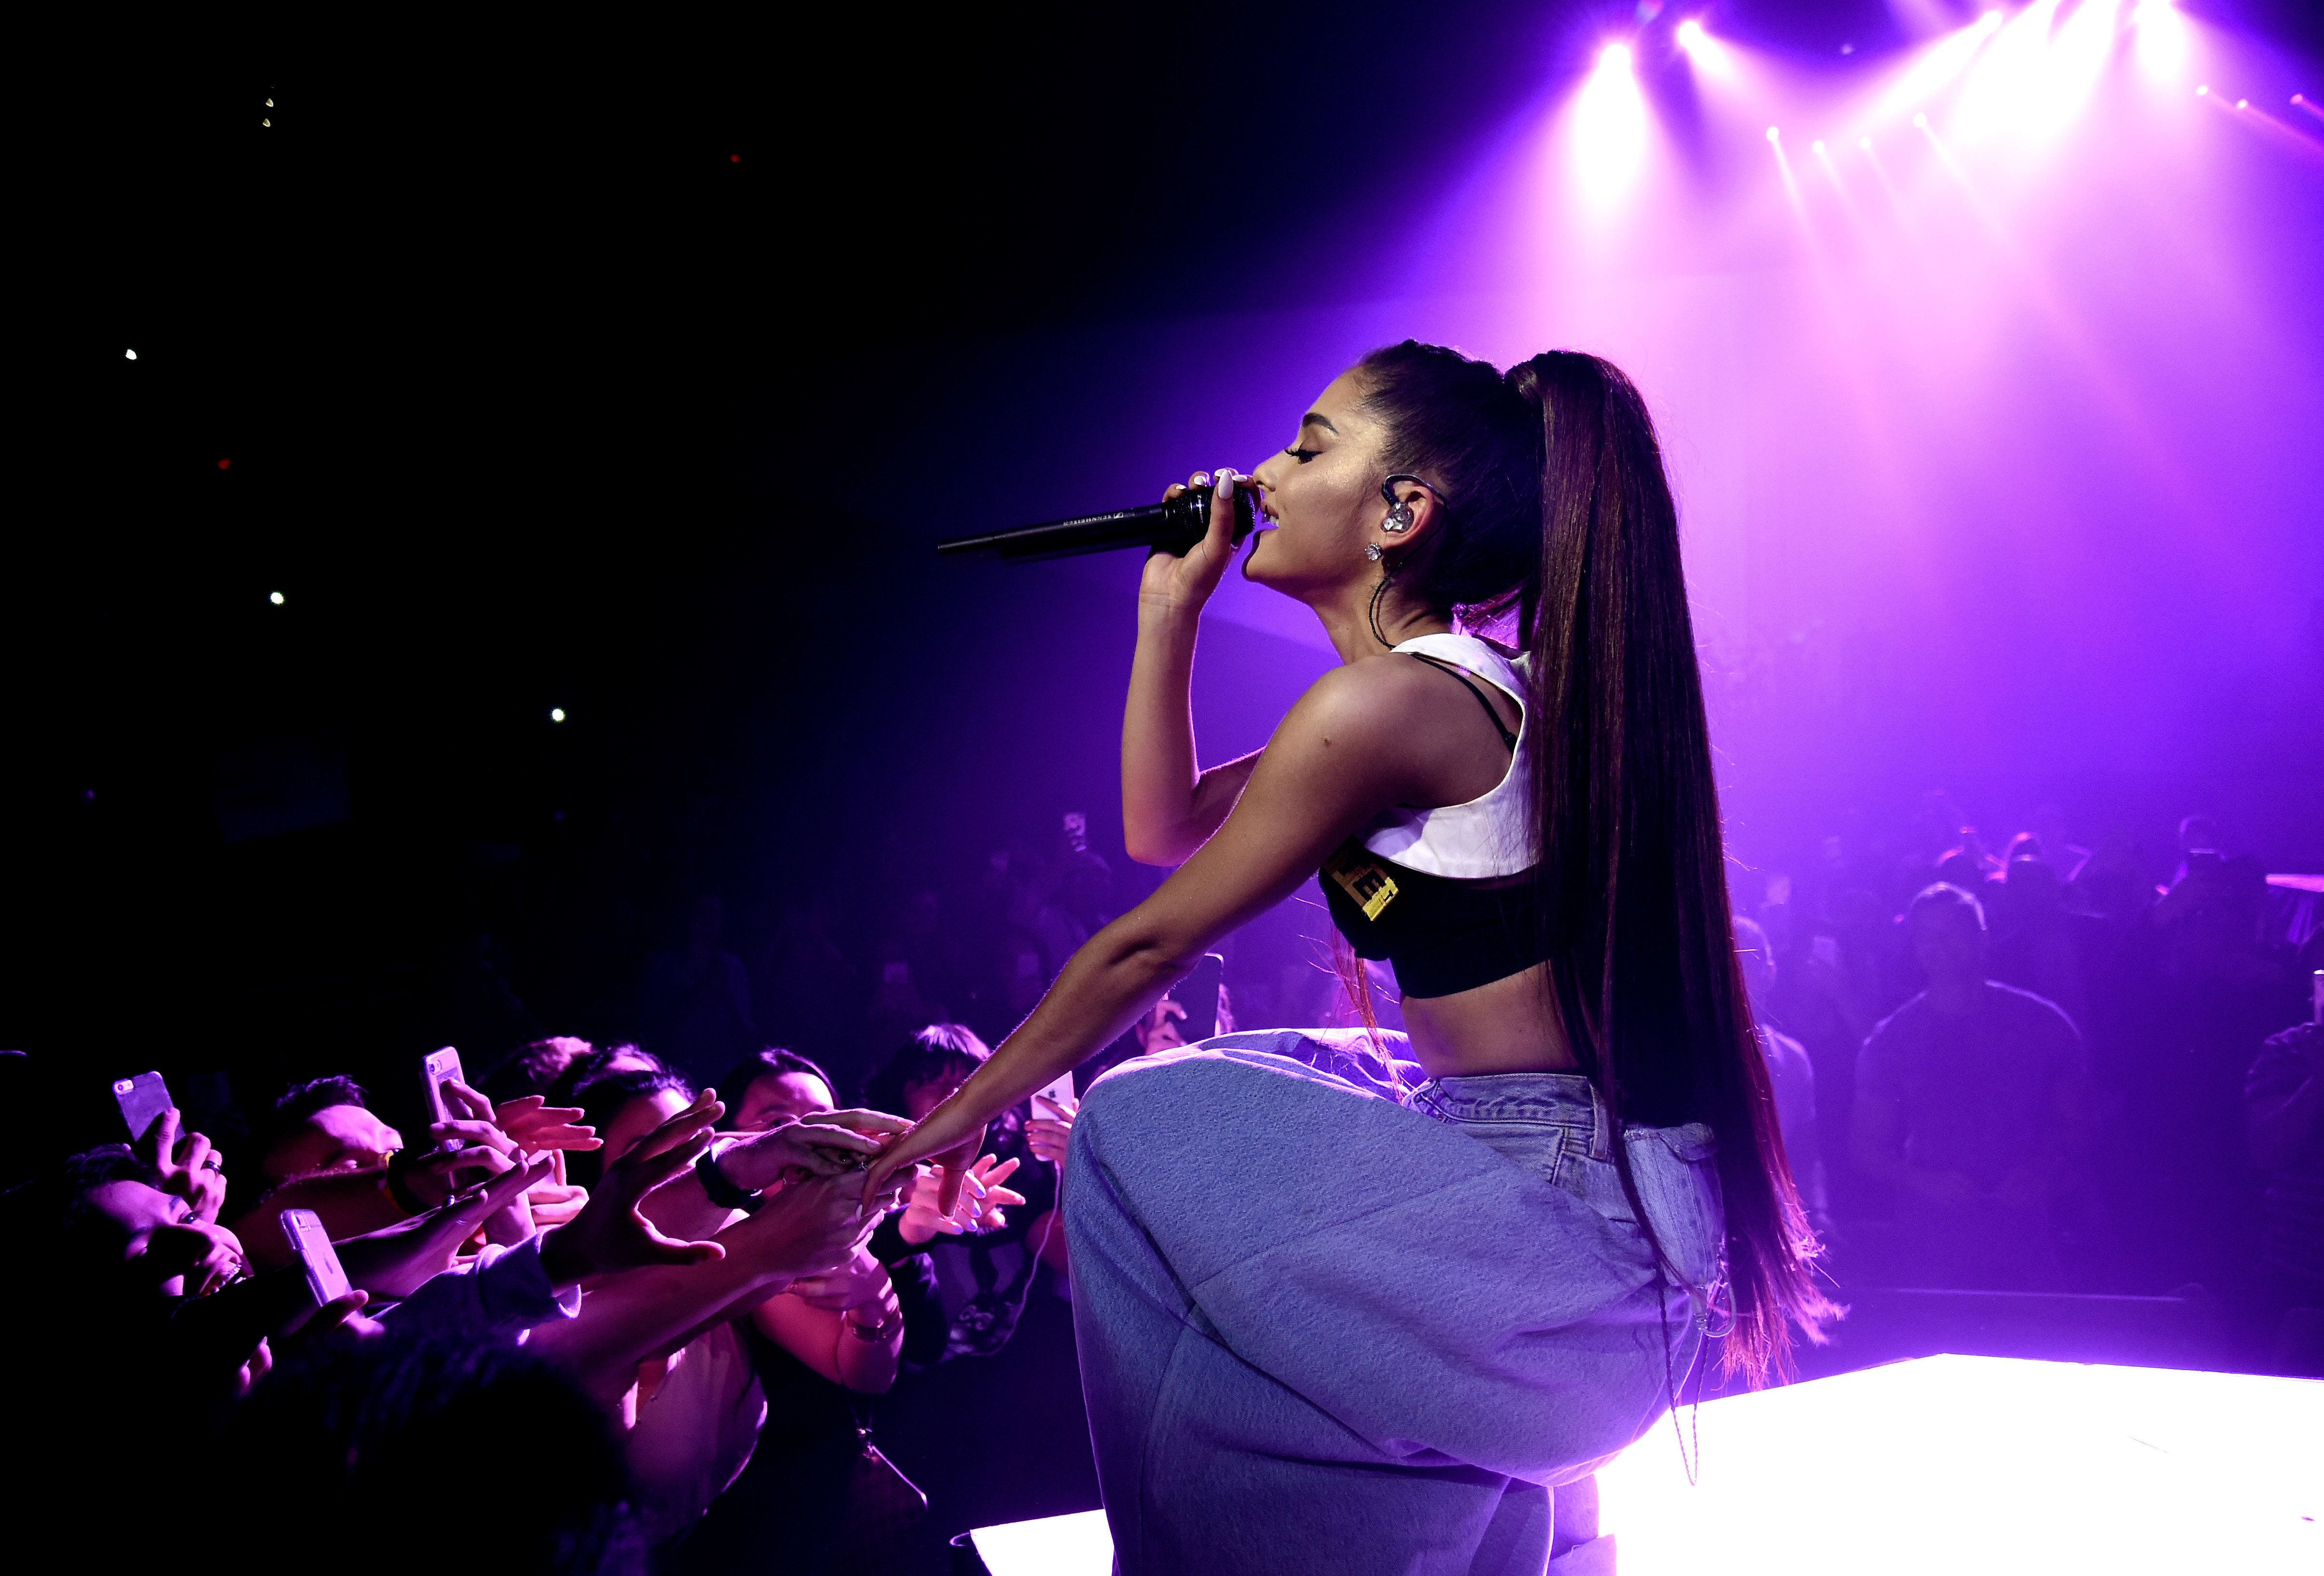 PHOENIX, AZ - FEBRUARY 03:  (EXCLUSIVE COVERAGE)  Ariana Grande performs on stage during the 'Dangerous Woman' Tour Opener at Talking Stick Resort Arena on February 3, 2017 in Phoenix, Arizona.  (Photo by Kevin Mazur/Getty Images for Live Nation)